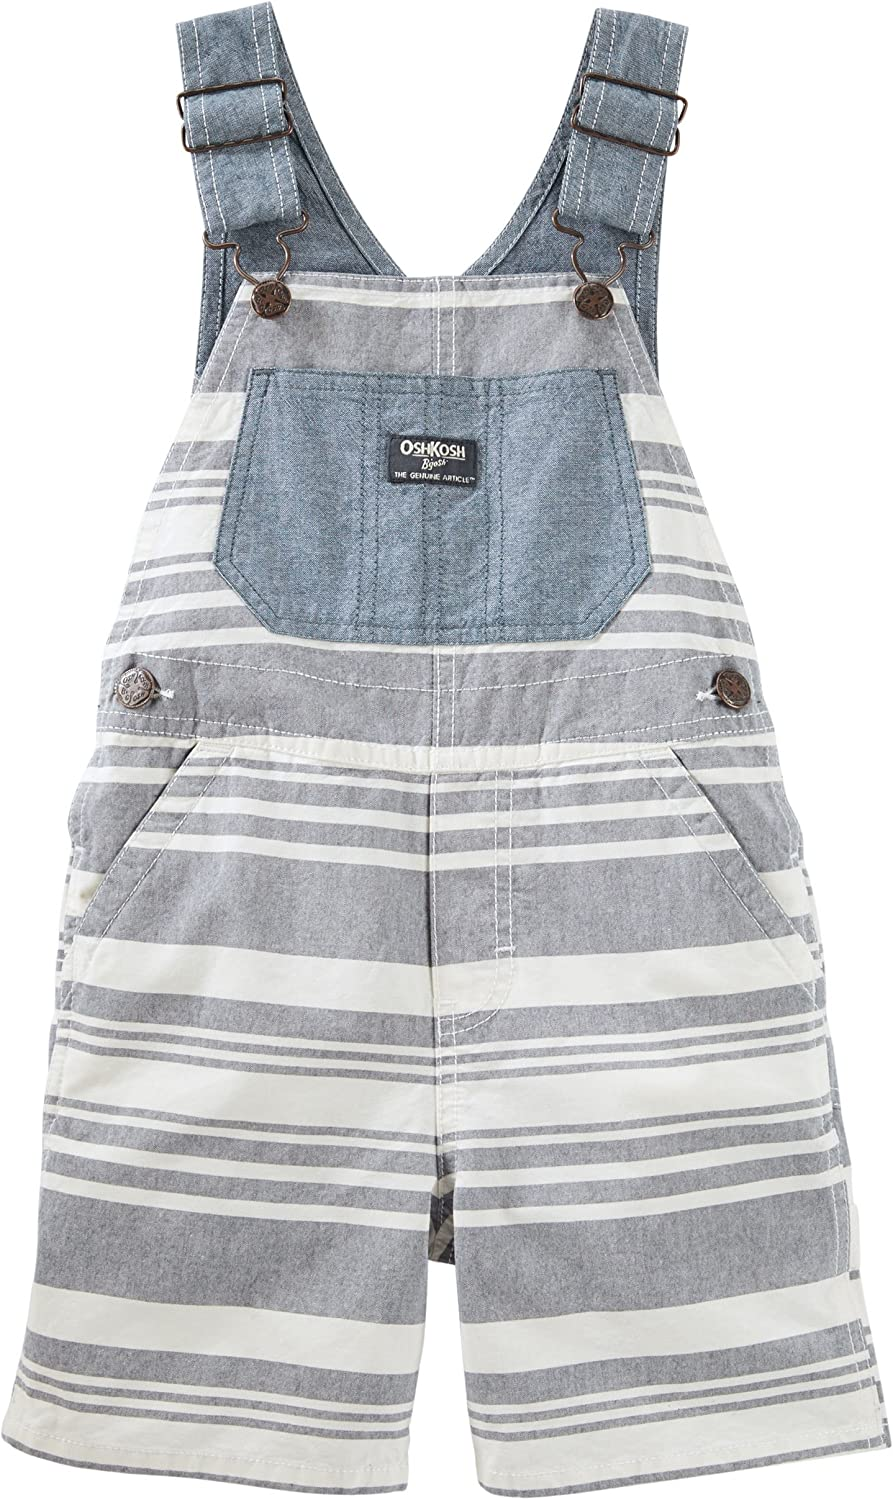 New Carter/'s Baby Boys 1 Pc Short Sleeve Striped Print Rompers Shortalls